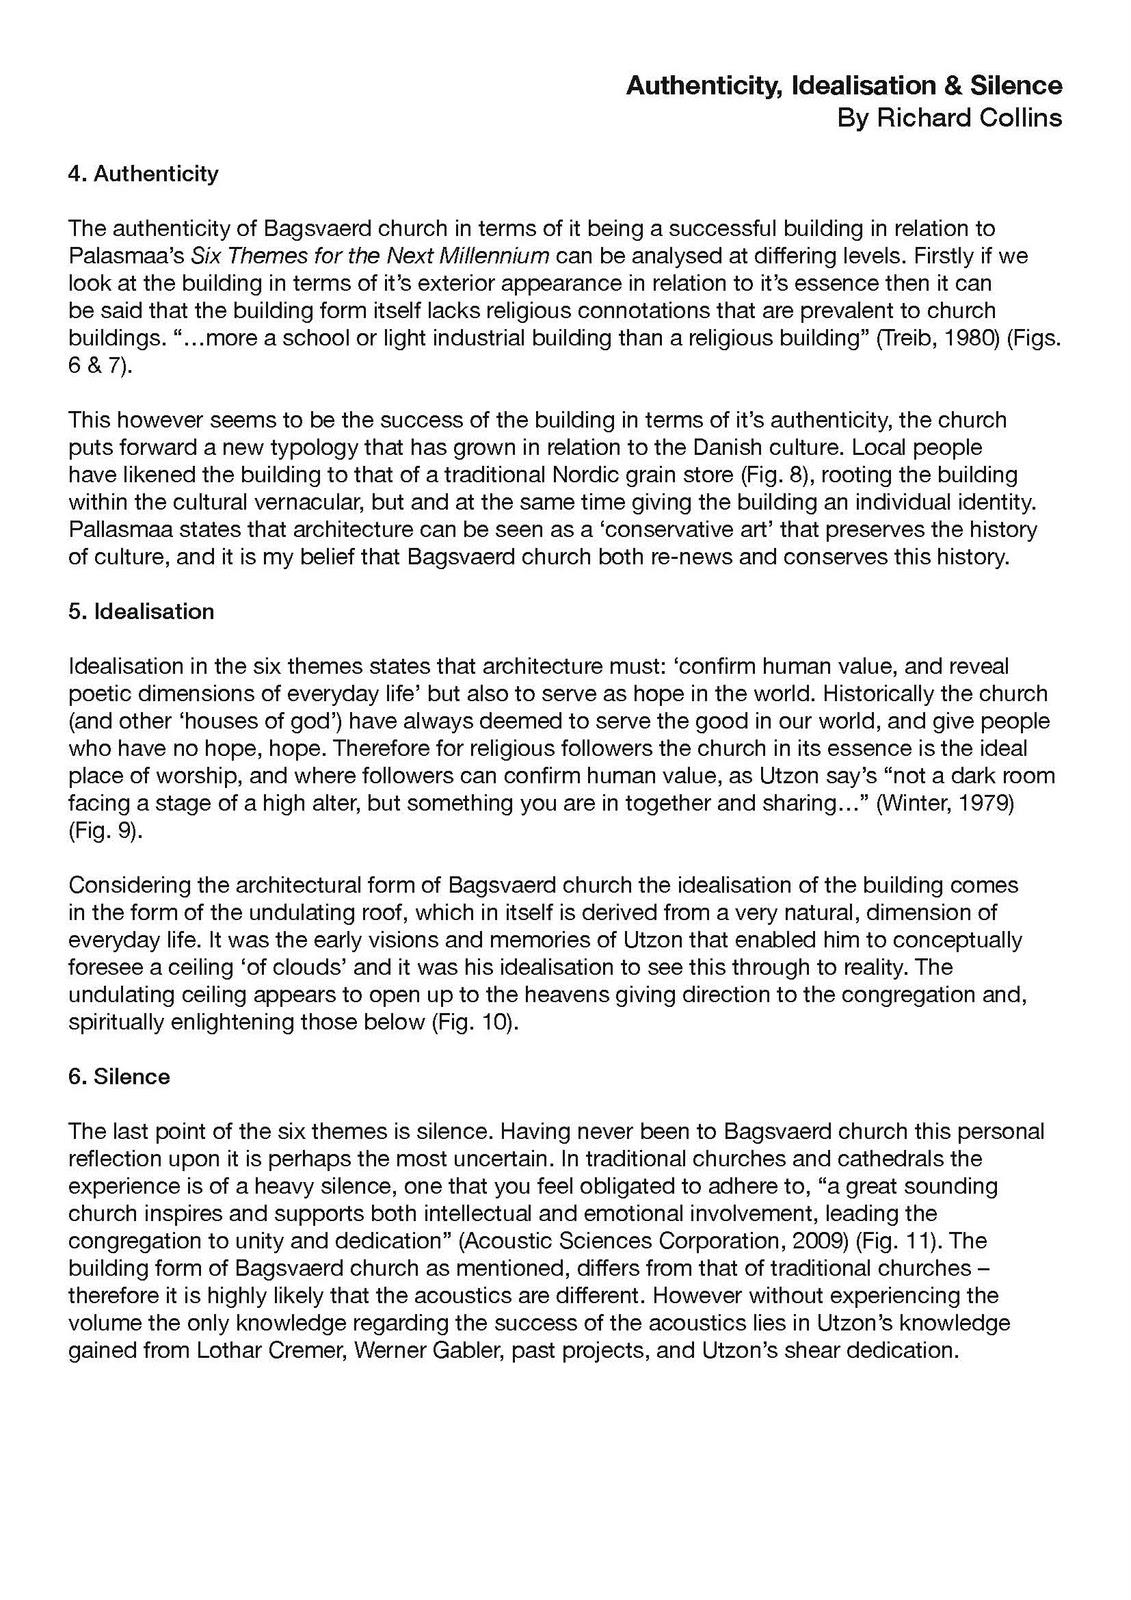 005 Group20illustrative20essay20dragged206 Essay Example Exemplification Unusual Topics Good Unique Question Full